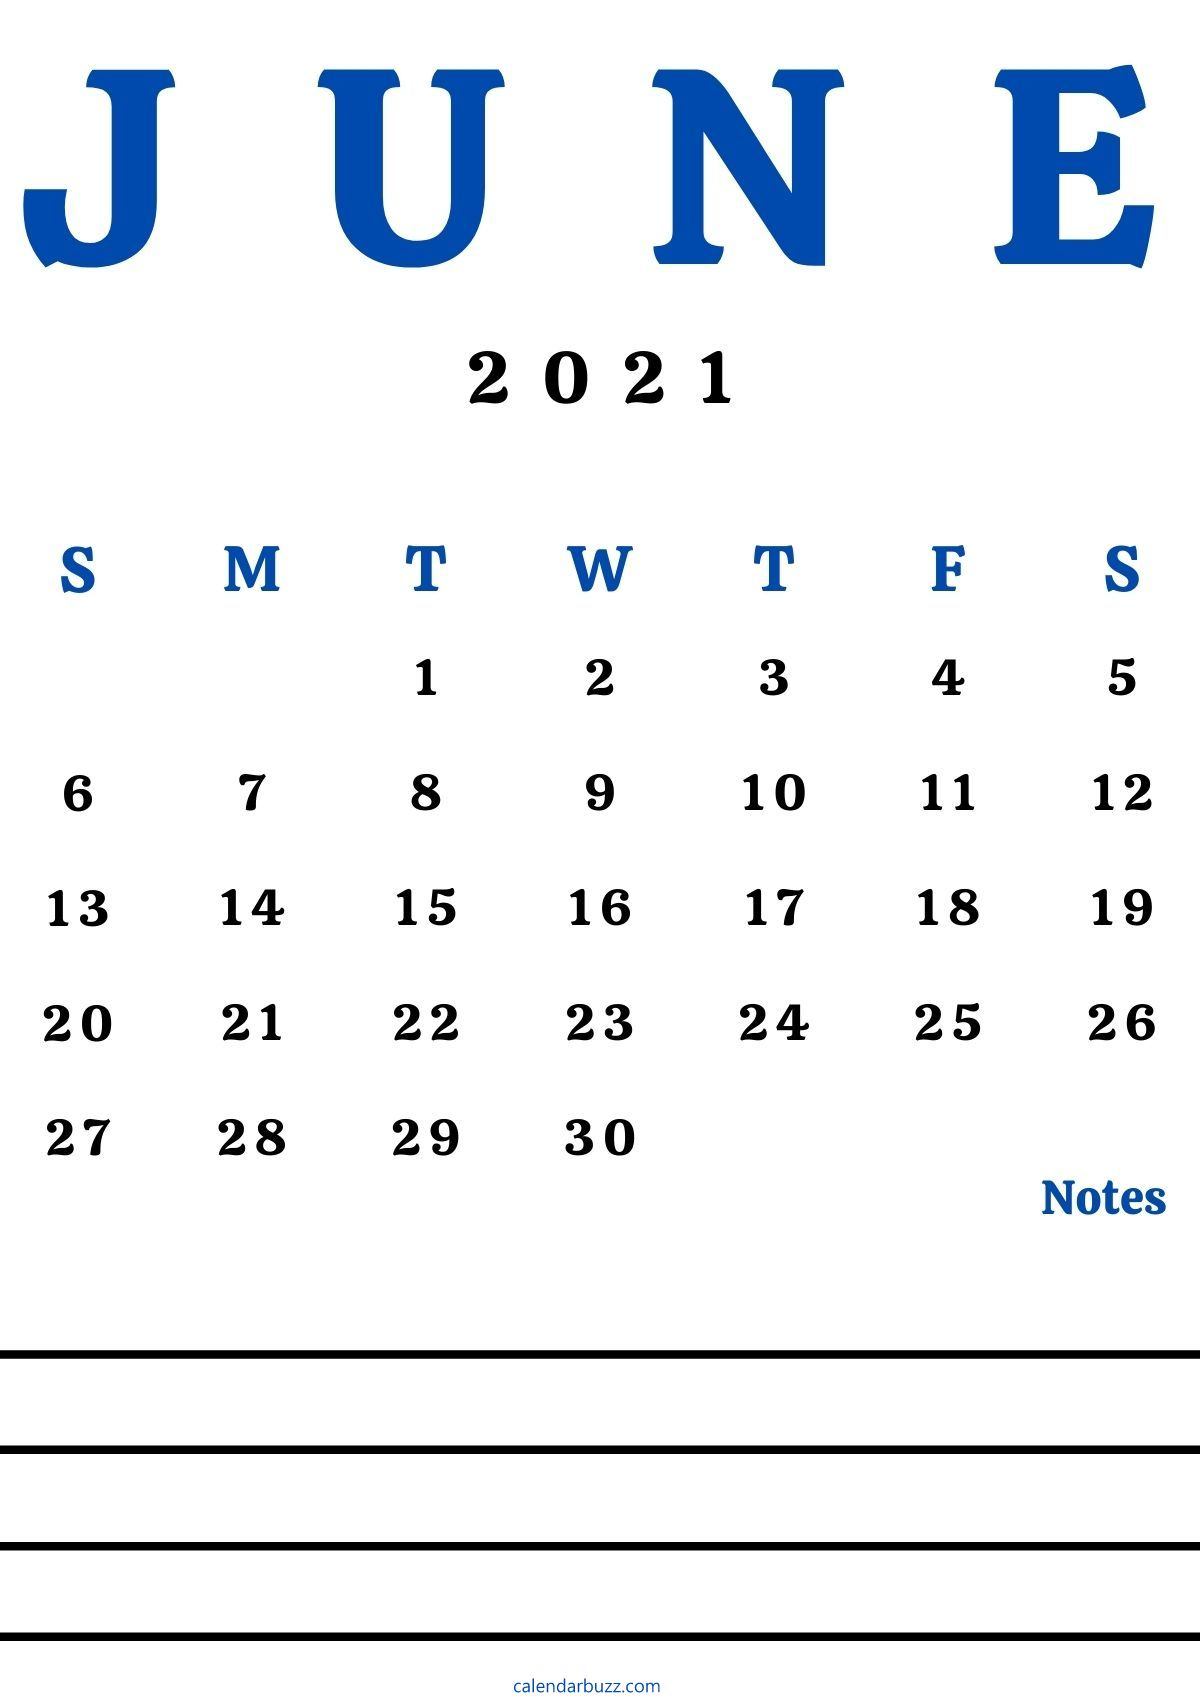 June 2021 Calendar With Space For Notes Free Download